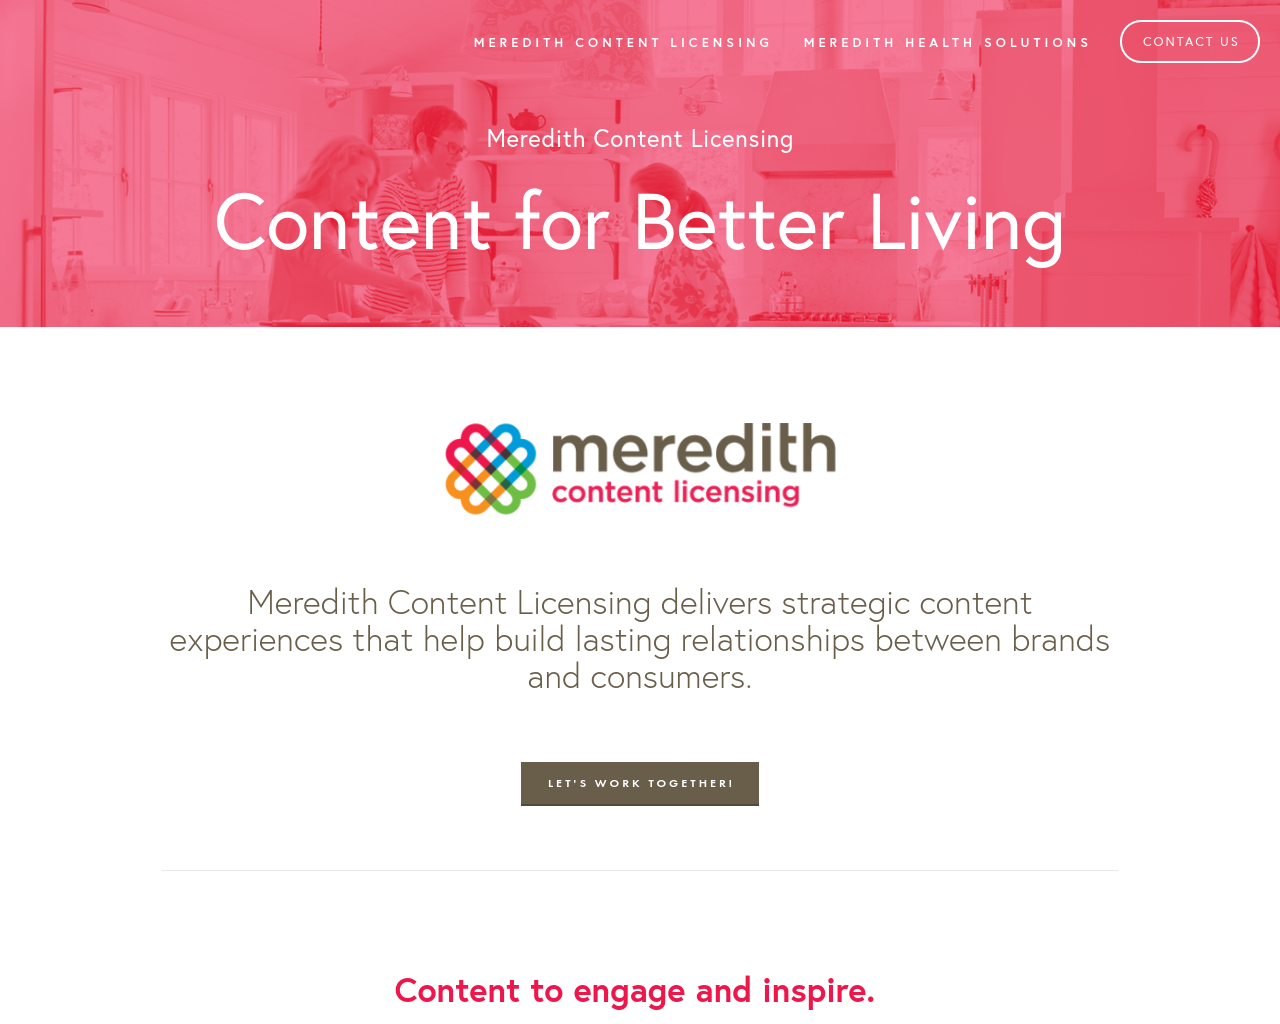 Meredith-Content-Licensing-Advertising-Reviews-Pricing